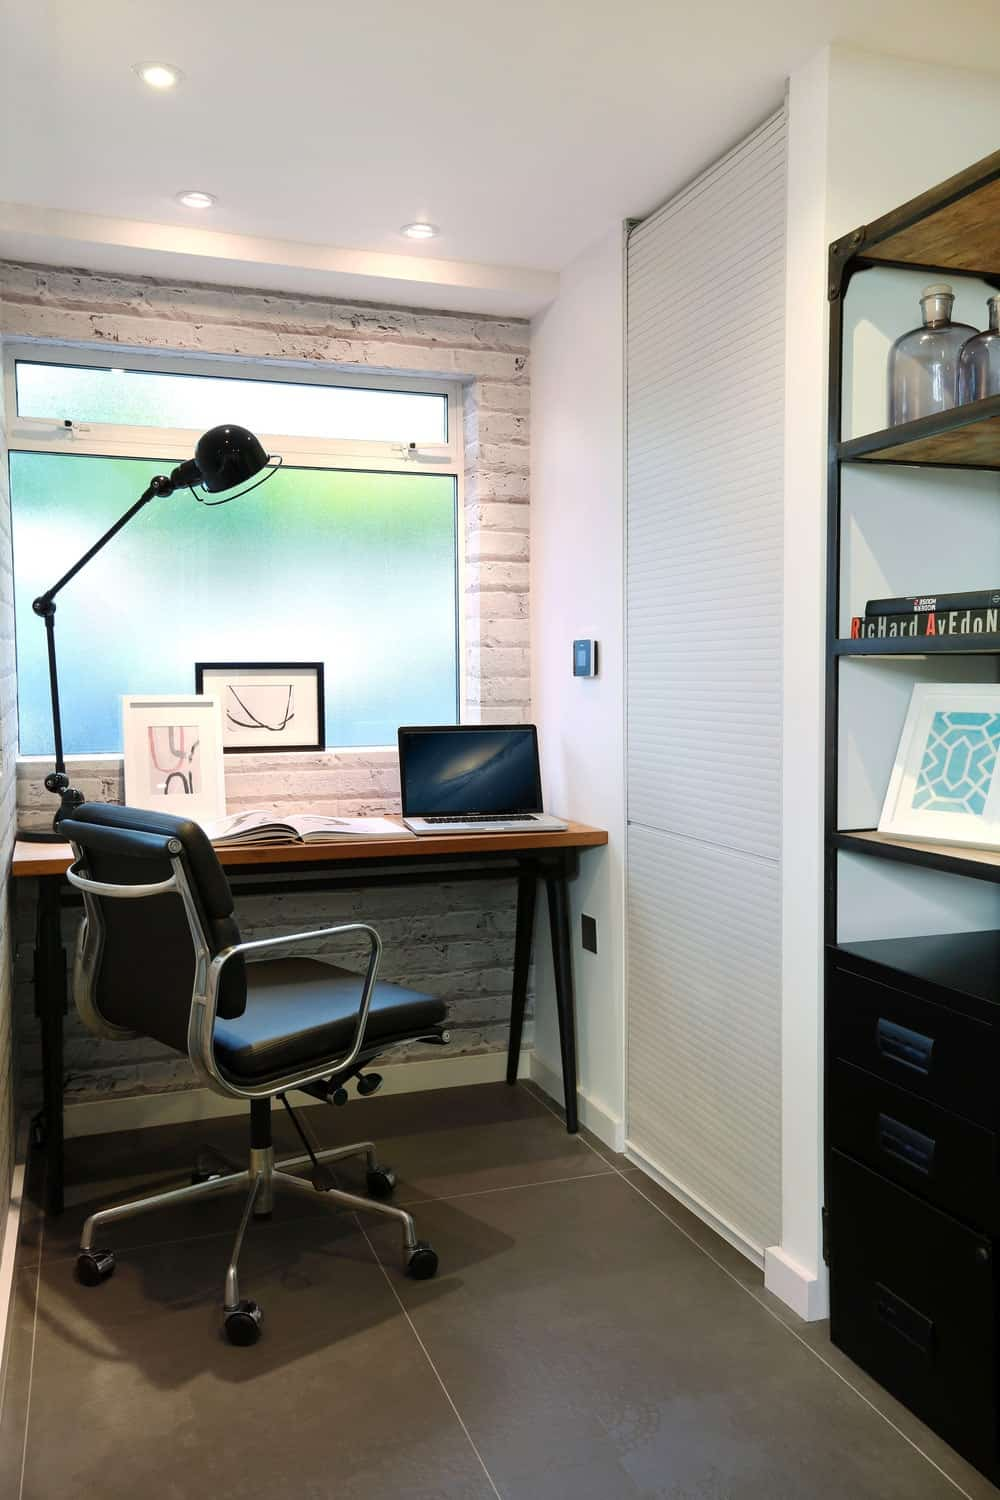 home office images. Contemporary Home Office With A Small Table And Freestanding Shelf Lighted By Recessed Lights Lamp. Photo Credit: Alex MaguireLLI Design Images